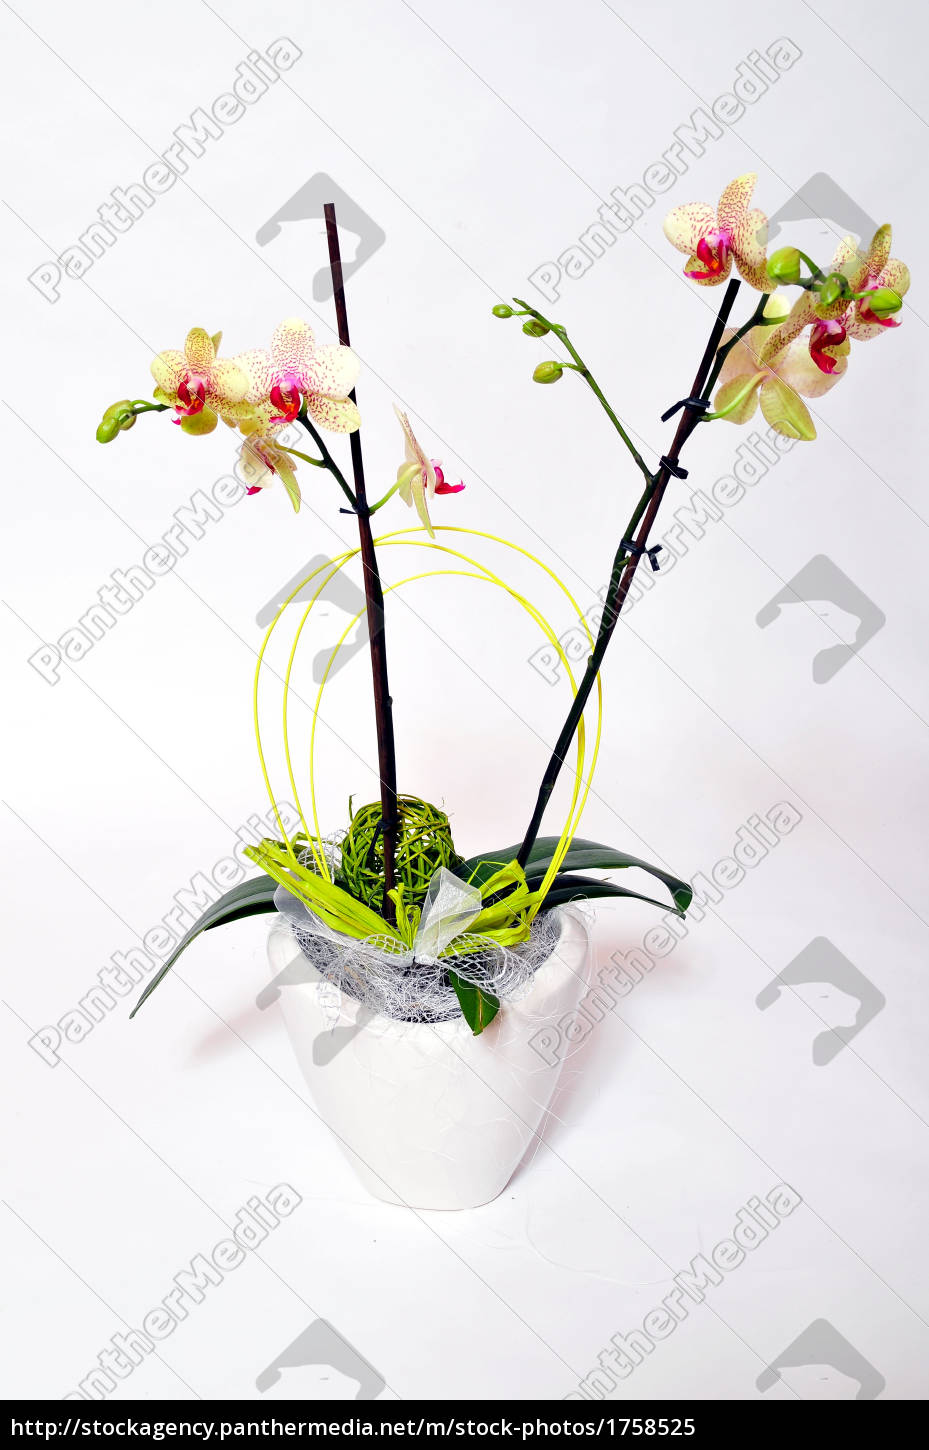 orchid, flowers - 1758525